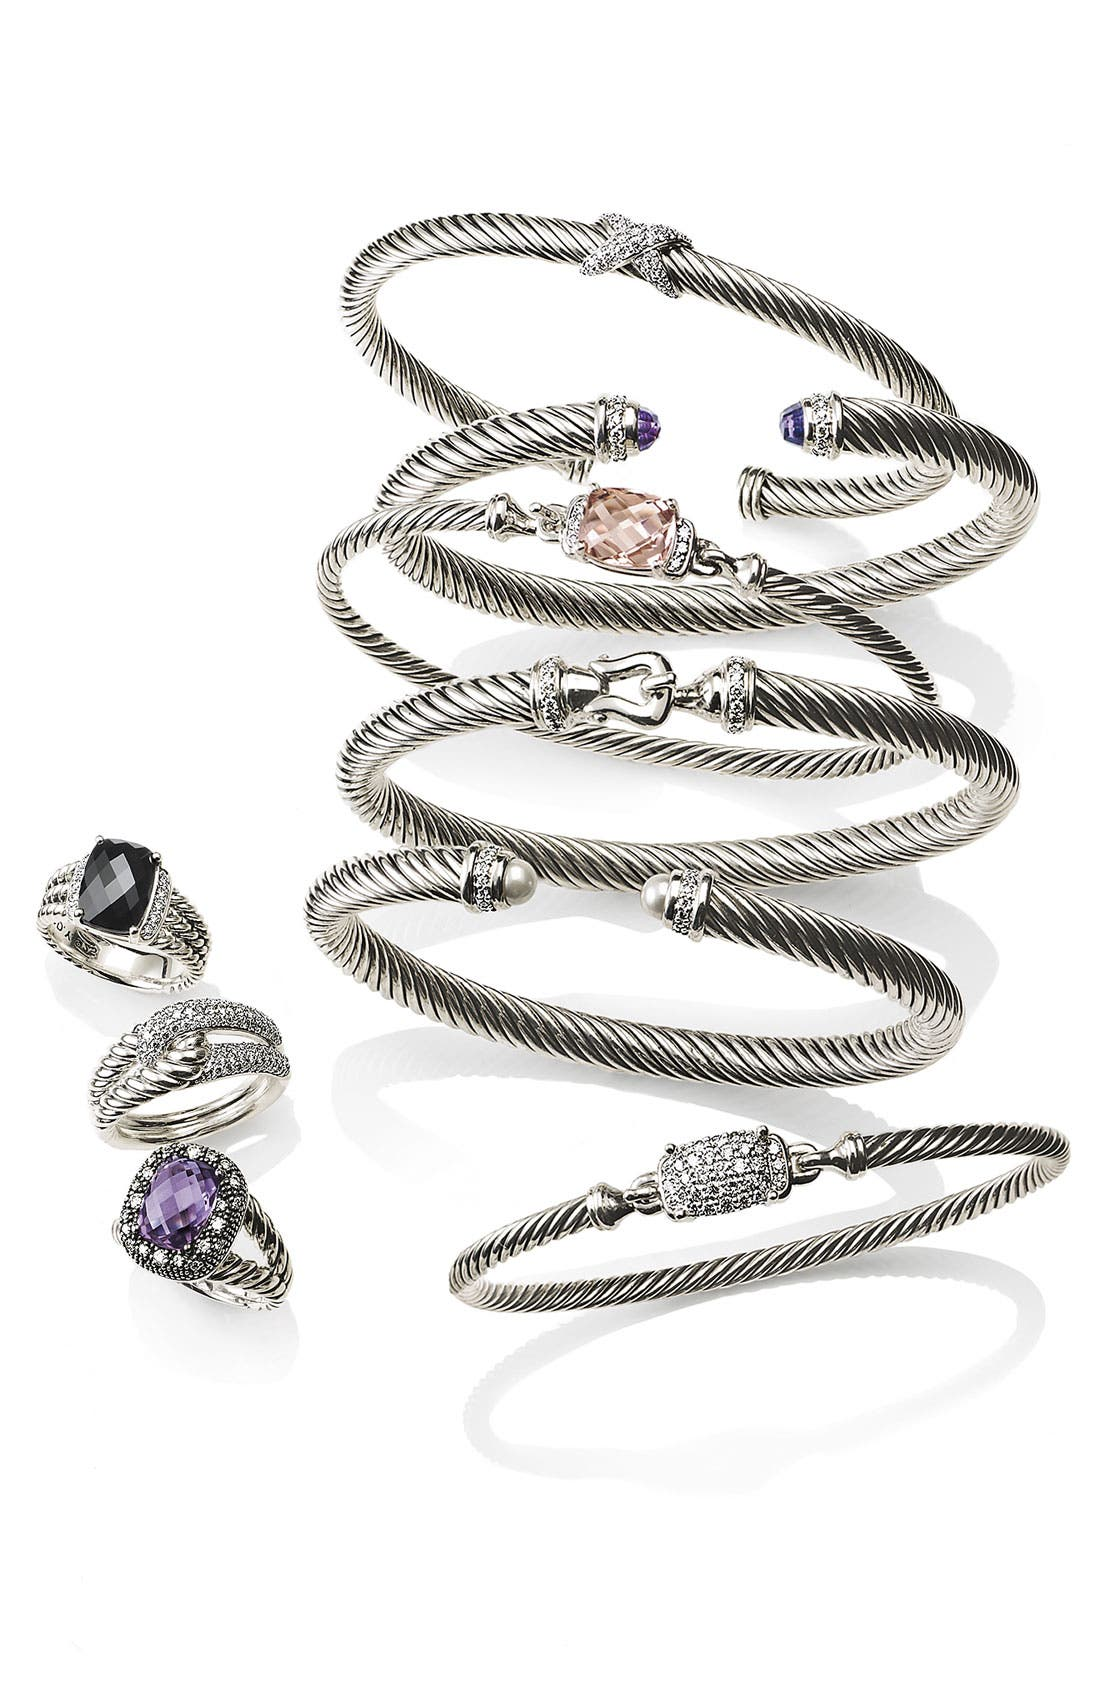 Alternate Image 3  - David Yurman 'Cable Classics' Bracelet with Semiprecious Stones & Diamonds